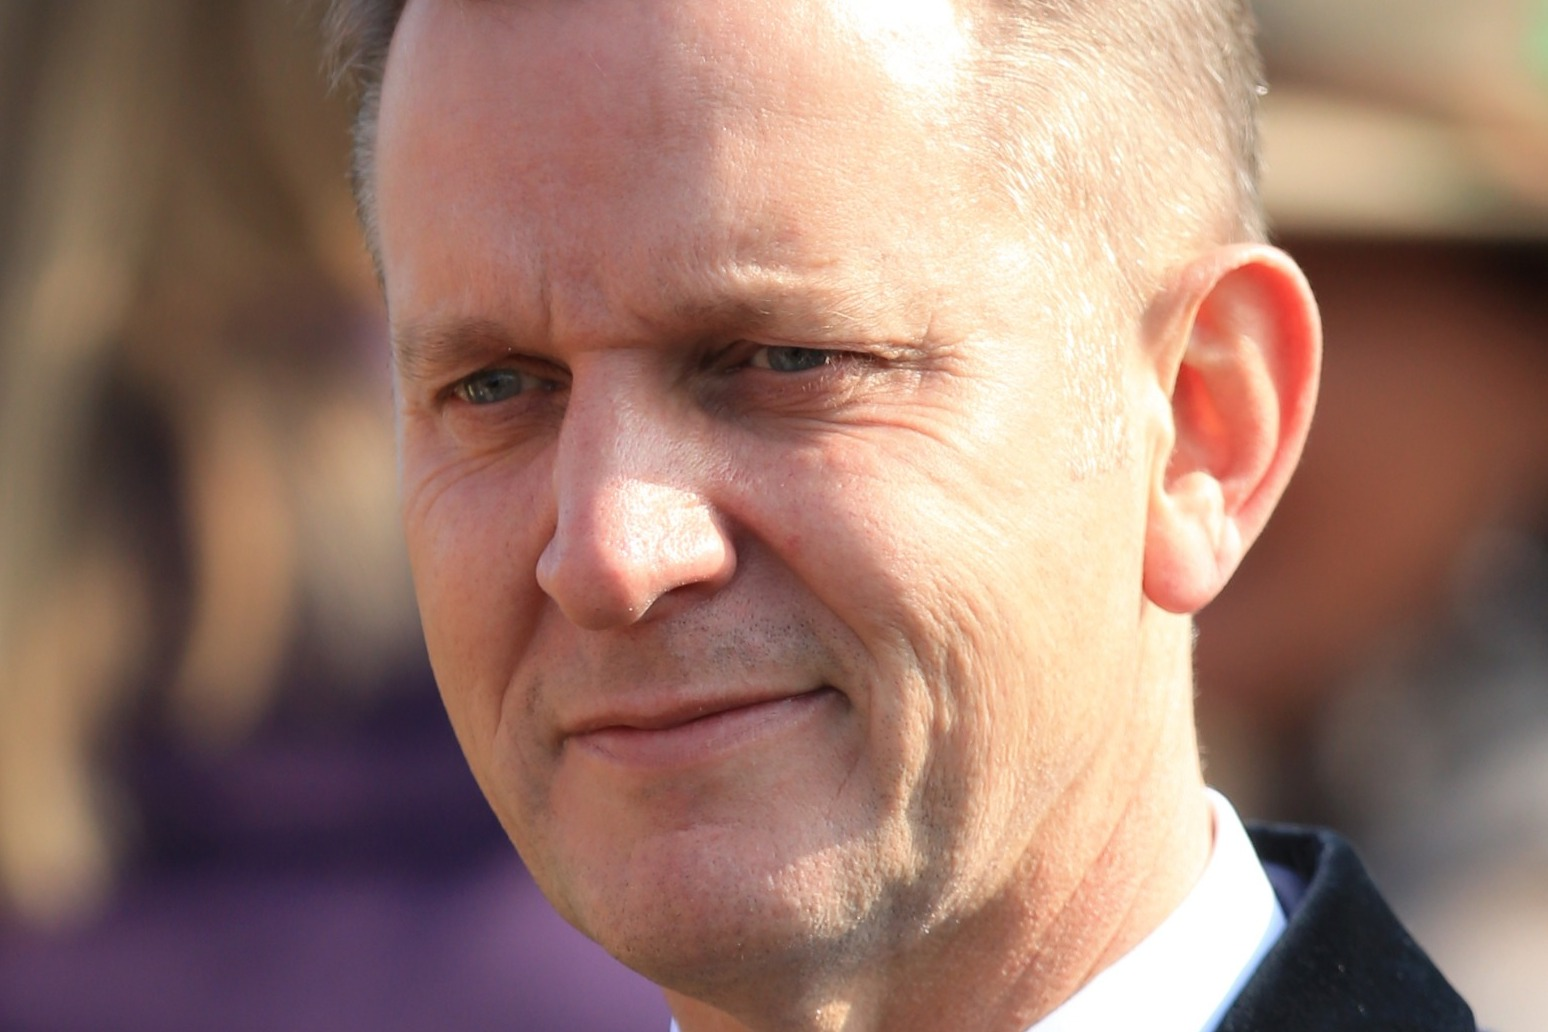 Jeremy Kyle may have played a part in the death of a guest on his TV show, according to a coroner